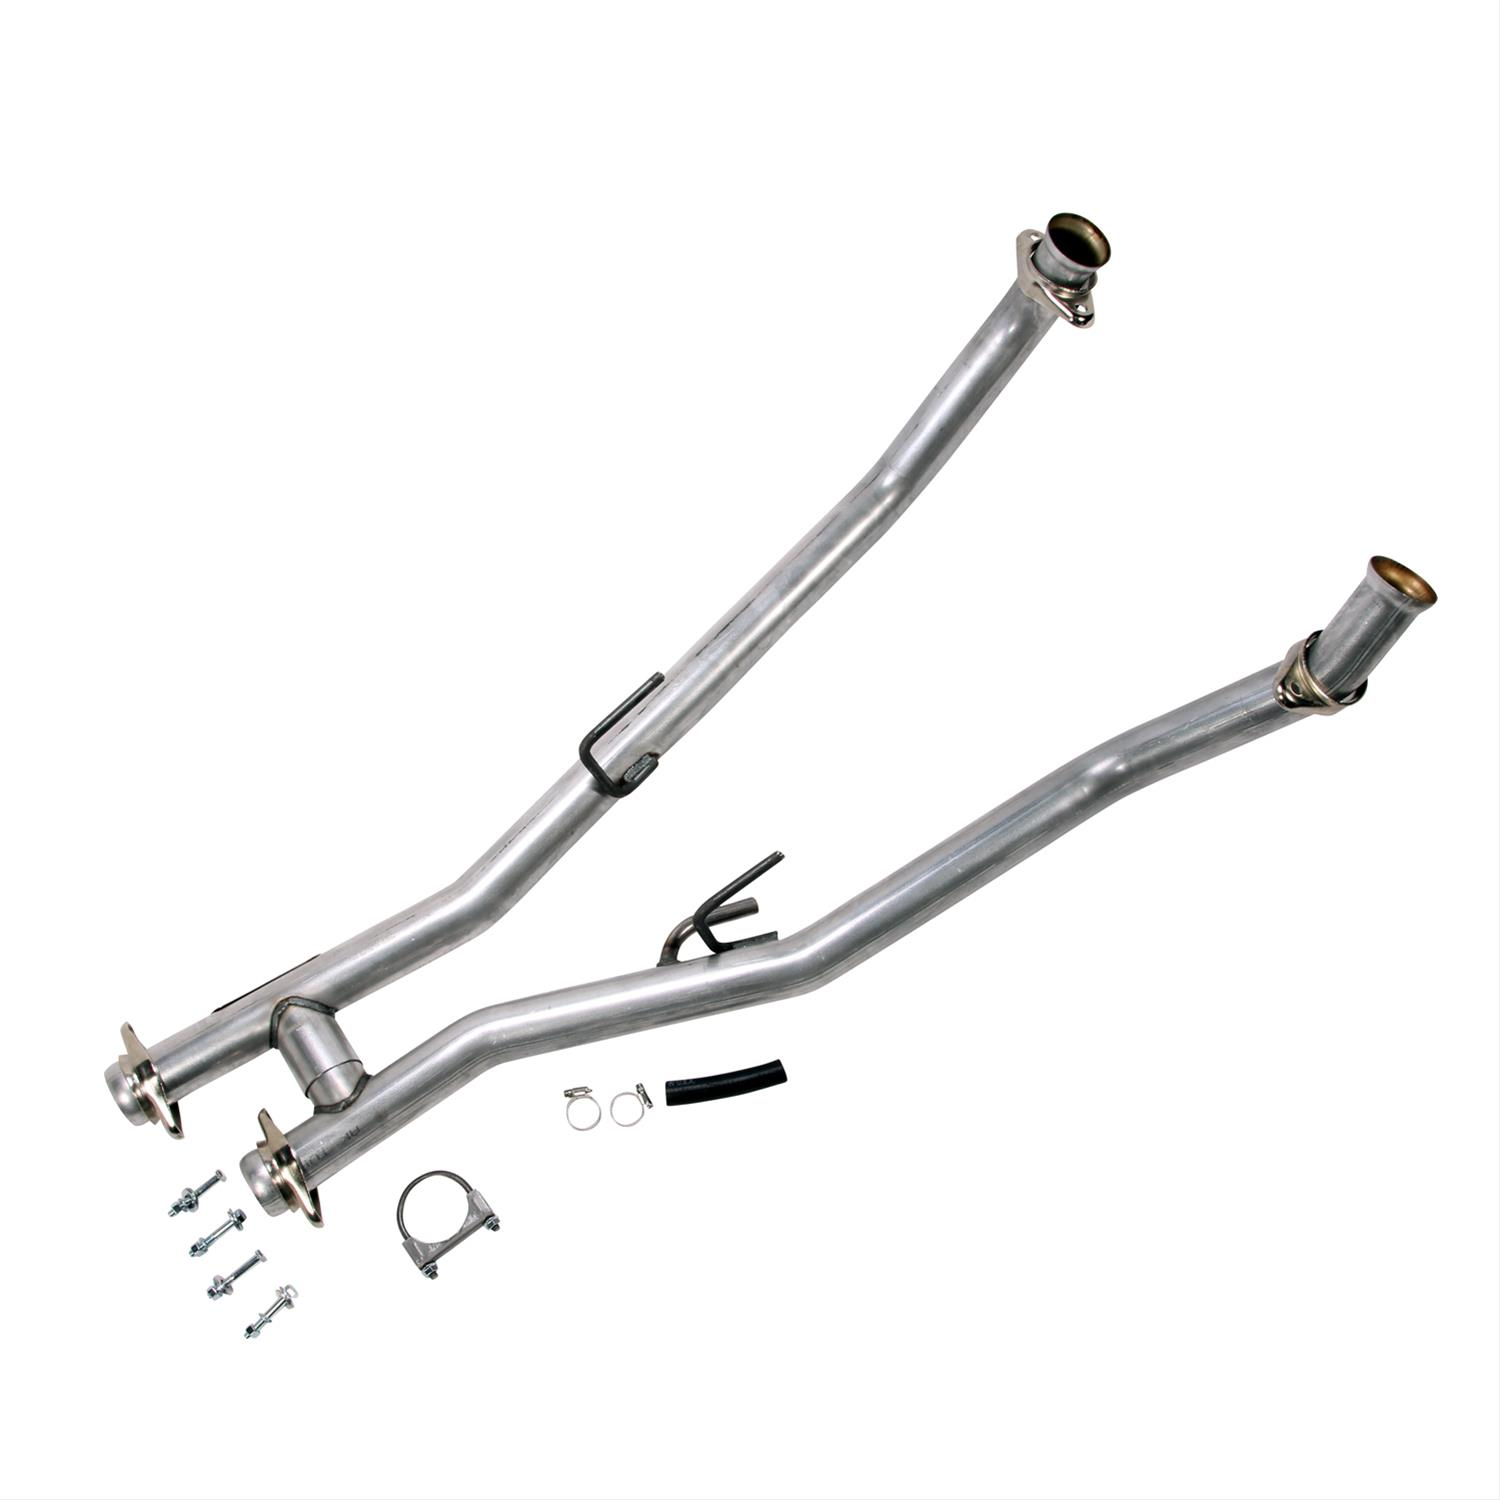 """Summit Racing® H-Pipe 2.5/"""" For Use w// Shorty Headers 640725 Ford Mustang"""